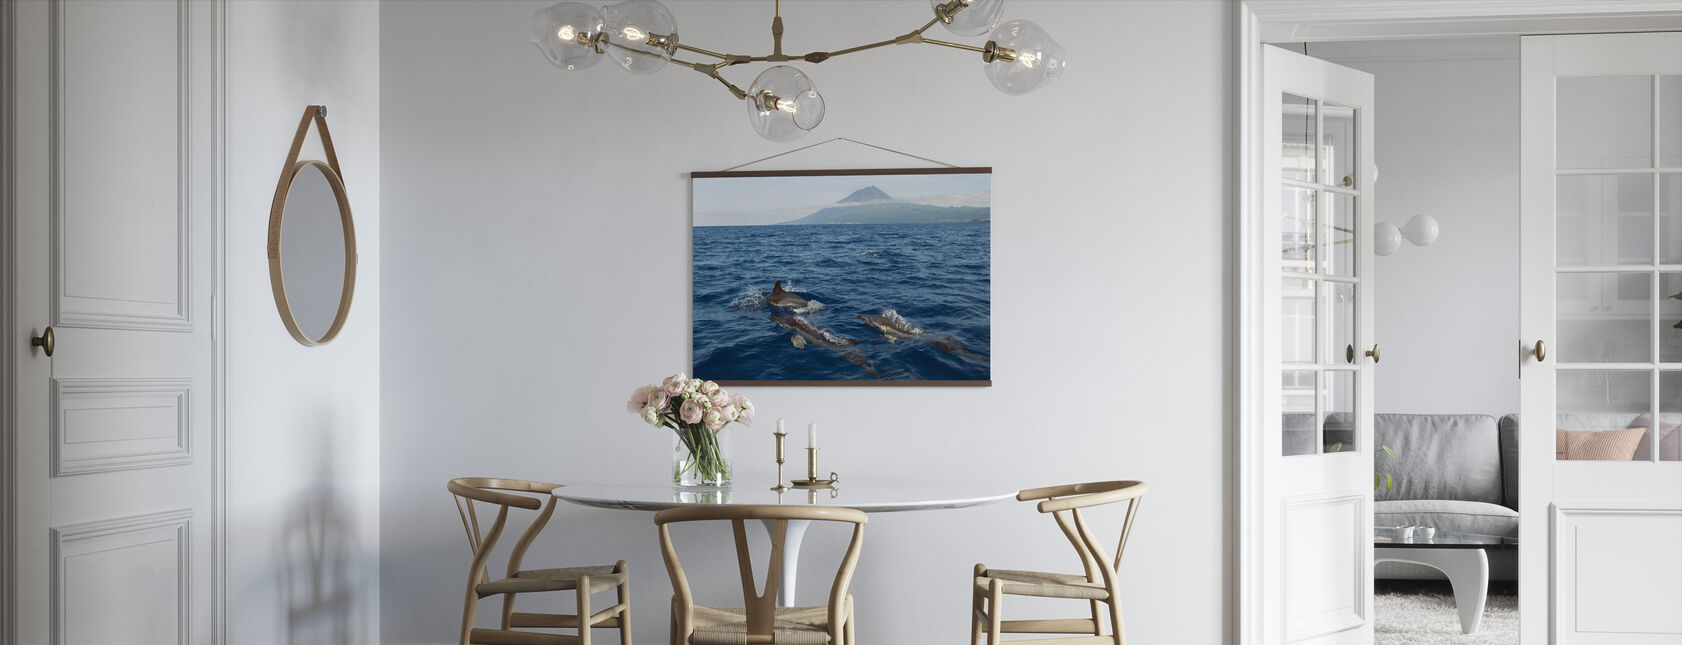 Dolphins in the Azores - Poster - Kitchen